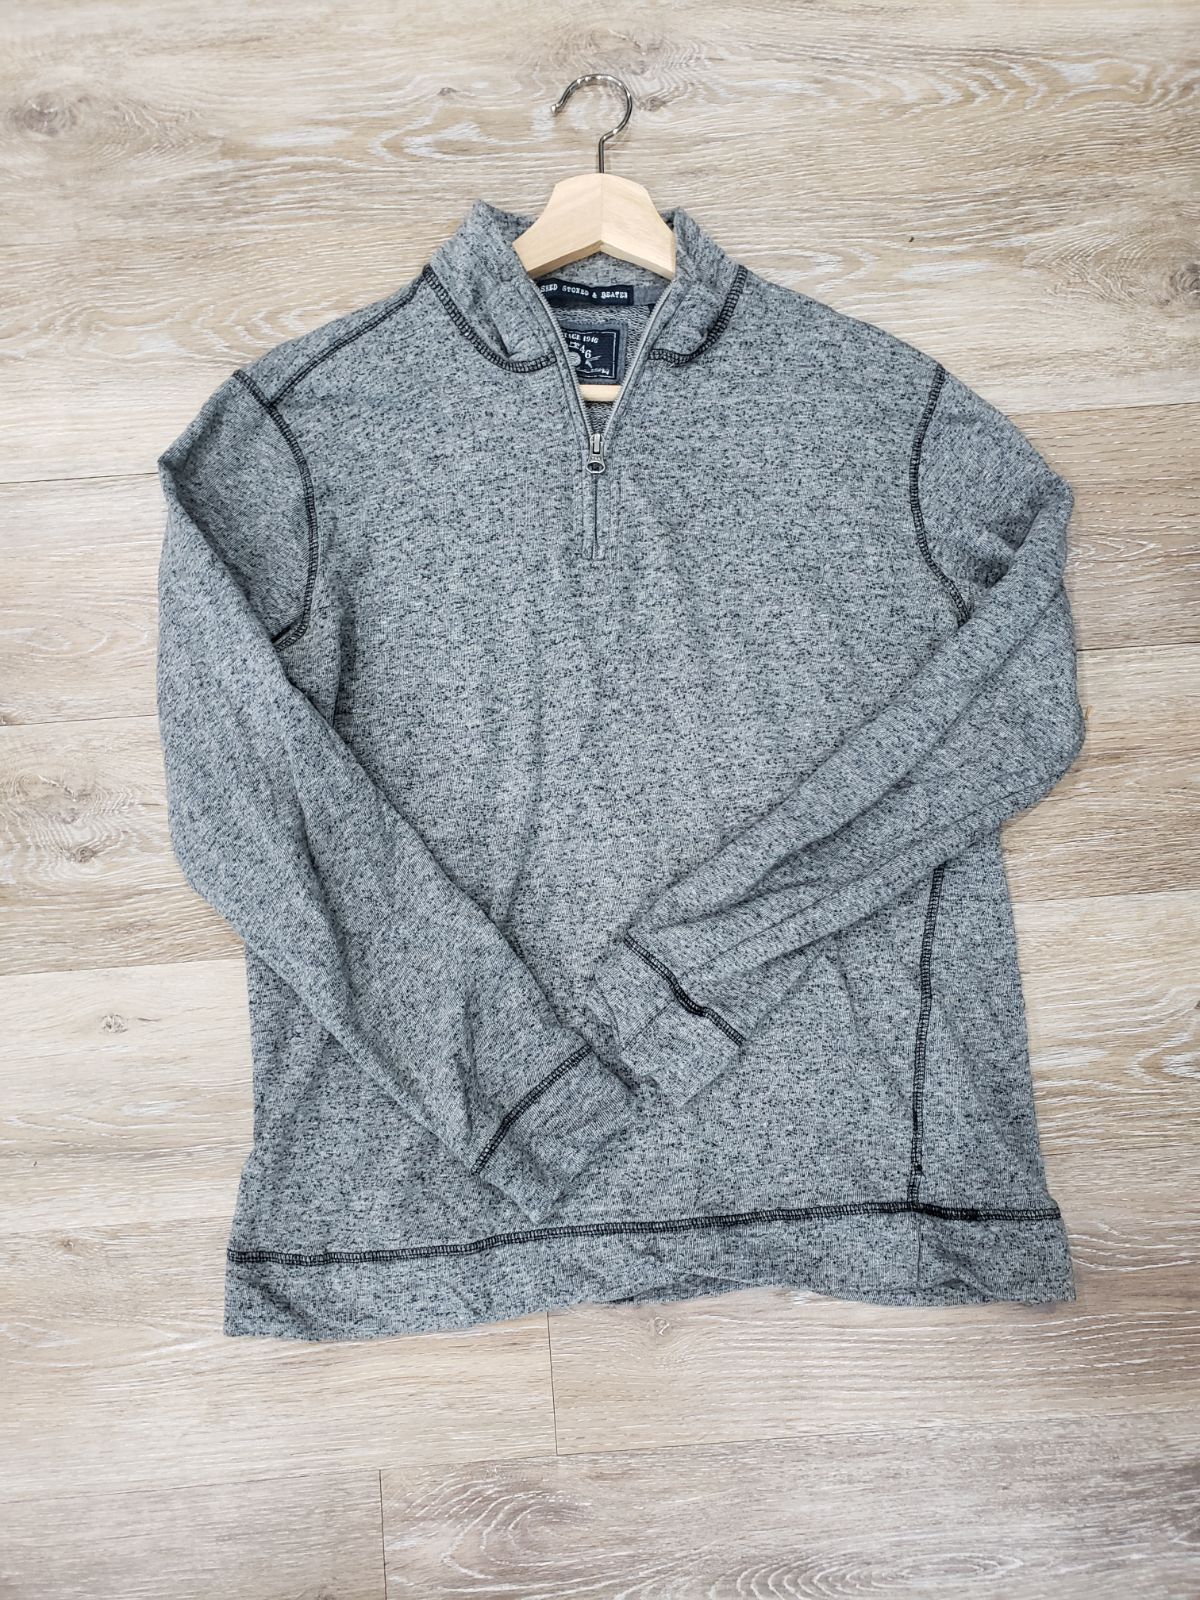 Washed, Stoned, & Beaten pullover M shir